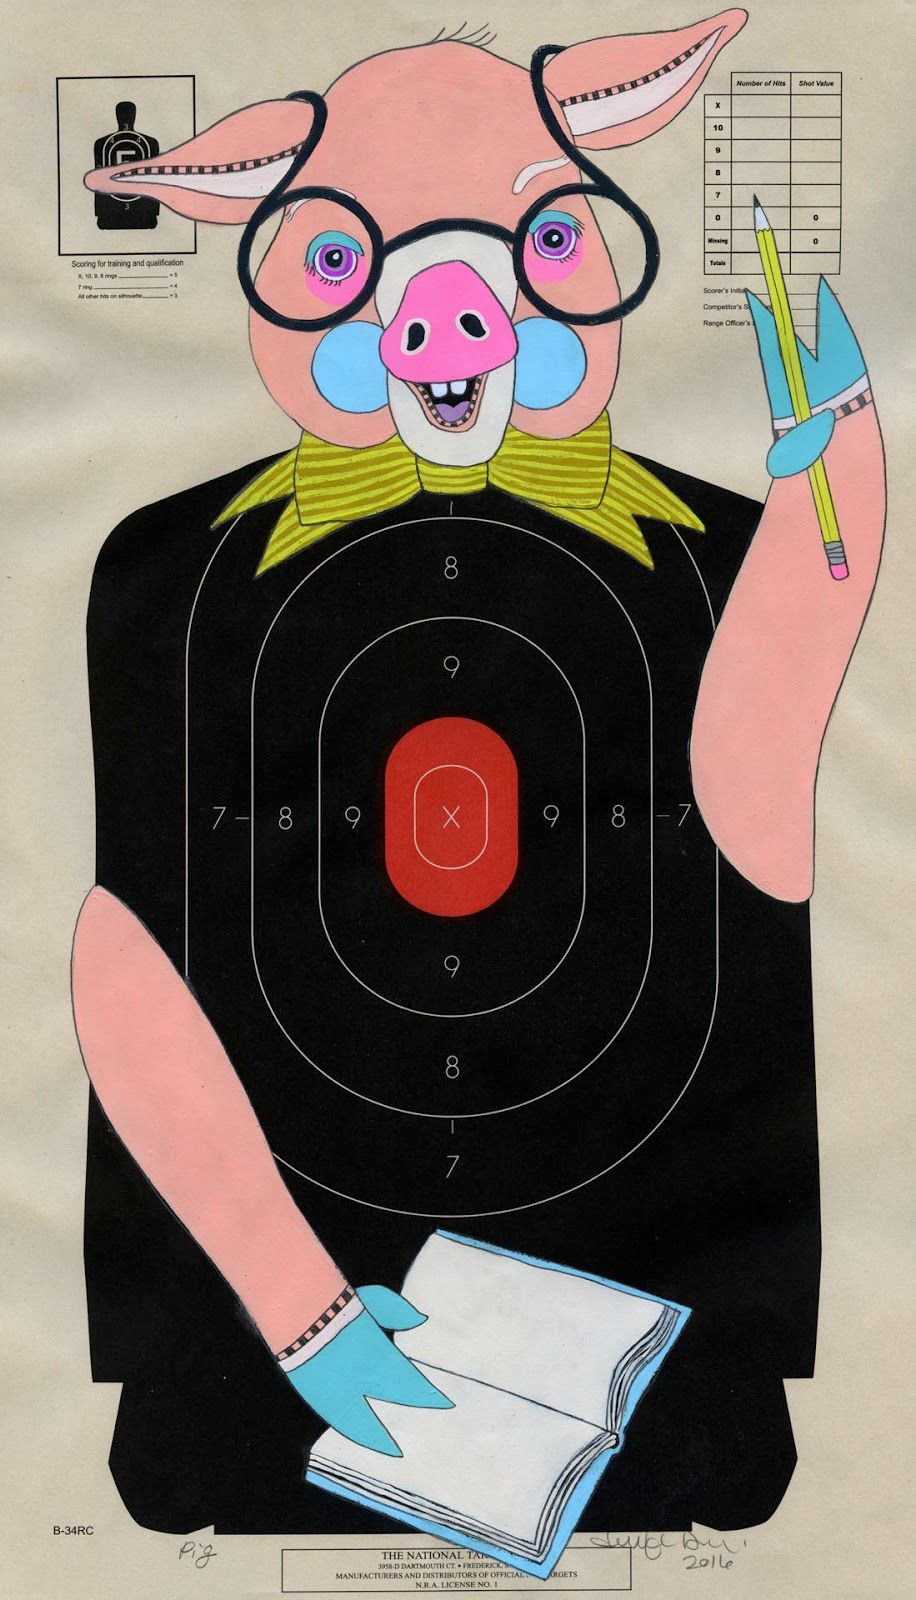 Here are a bunch of the gazillion hand-painted paper shooting targets I have painted over the past year or so. These are really fun to make...